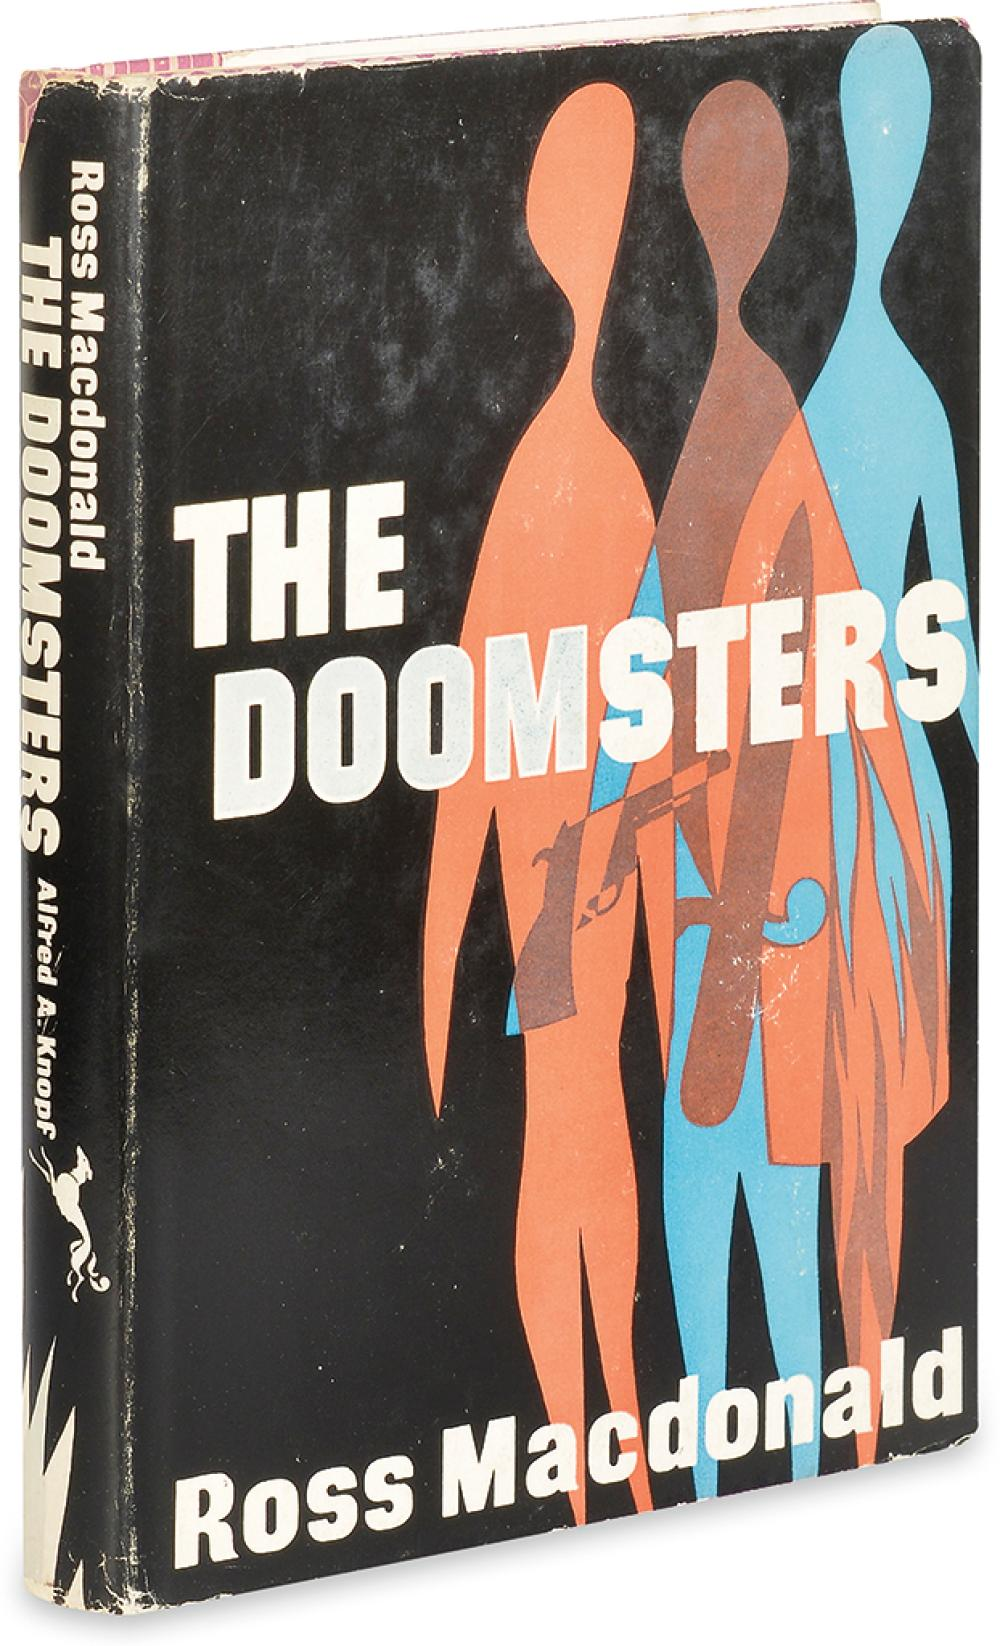 MACDONALD, ROSS. Doomsters.